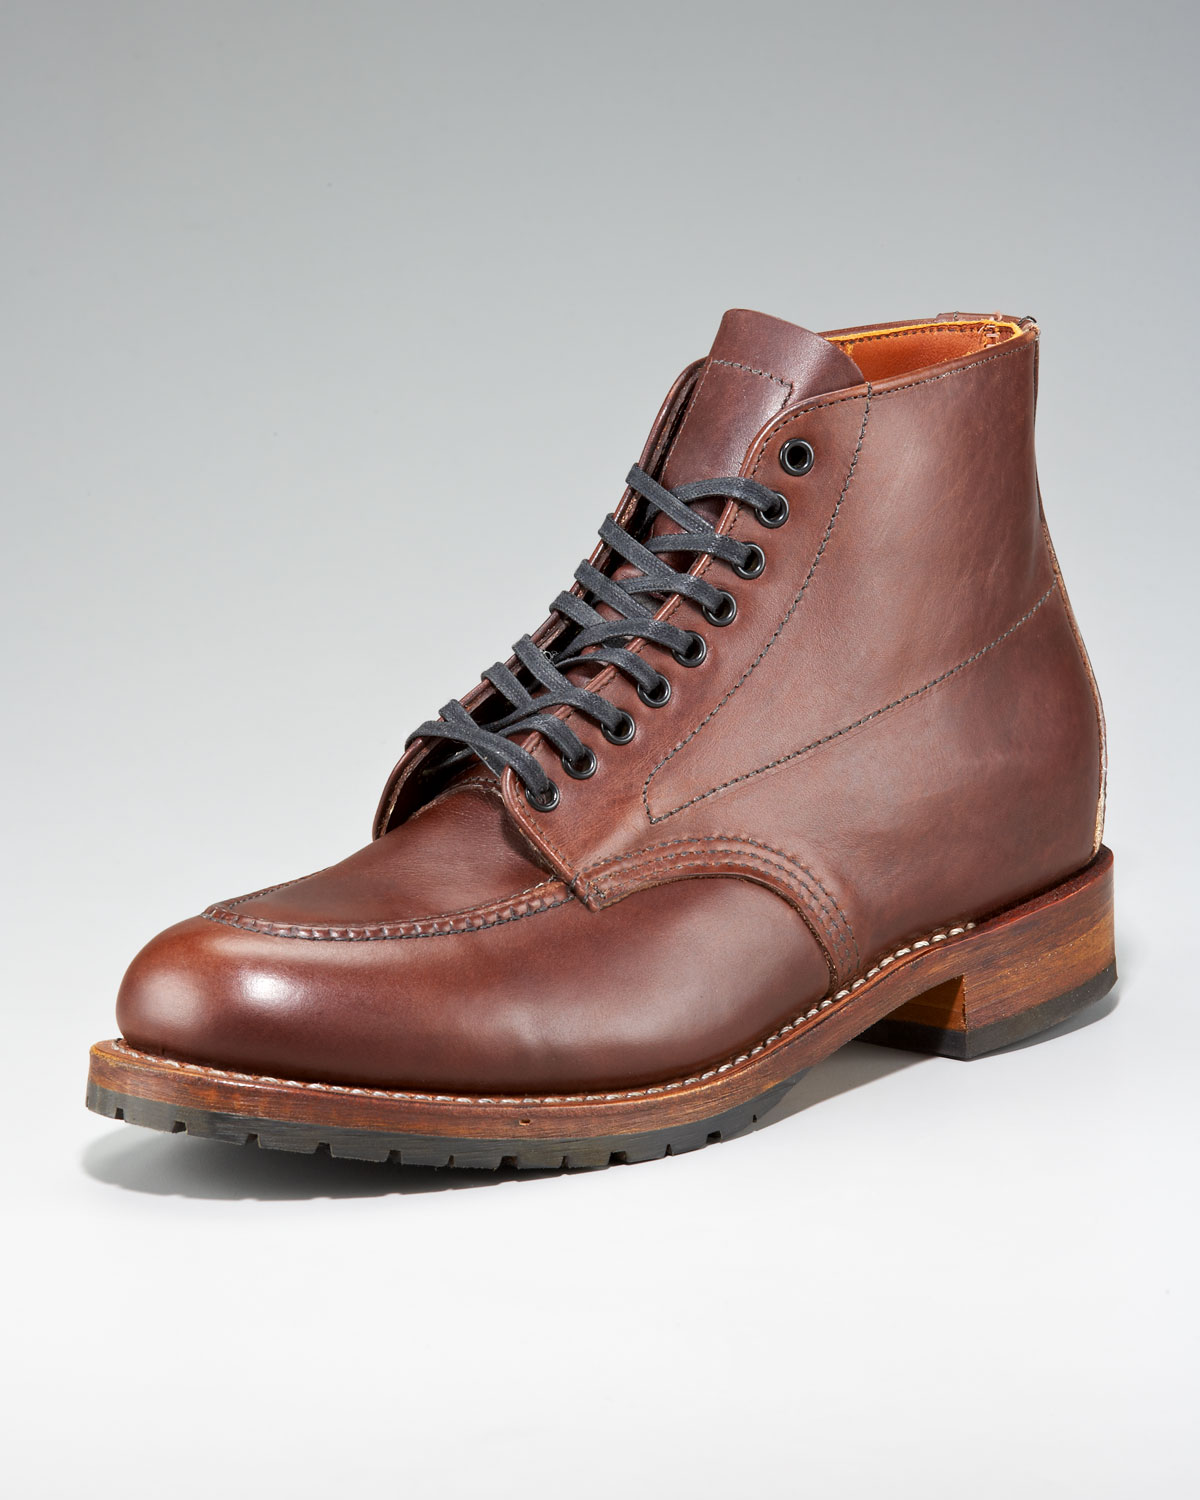 Buy Red Wing Boots Online - Boot Yc